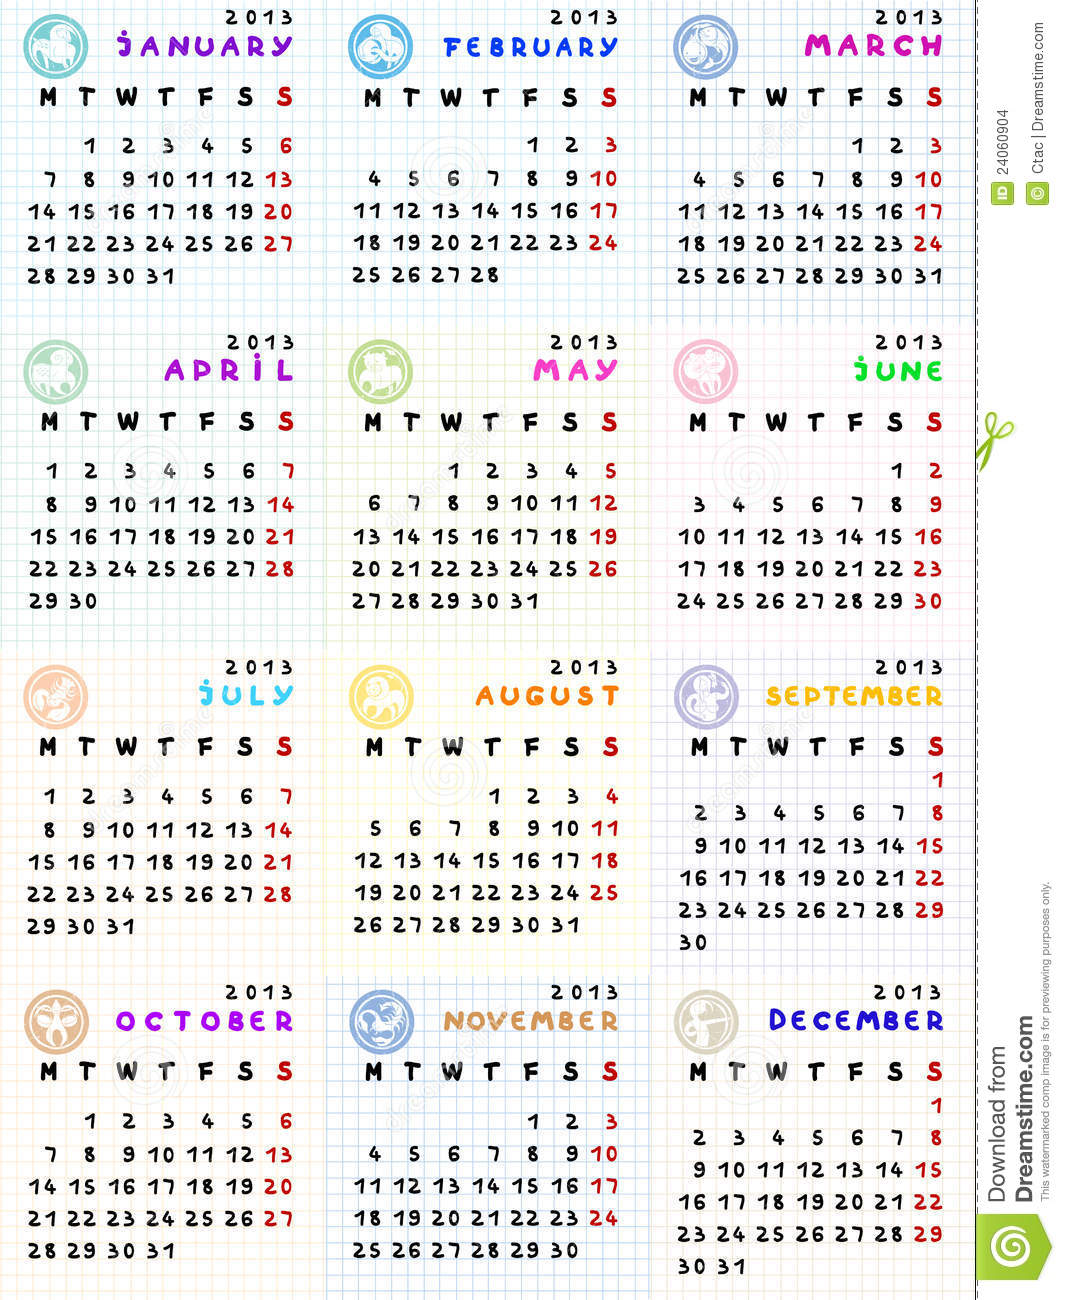 Monthly Calendar Zodiac Signs : Calendar with zodiac signs on a math paper background